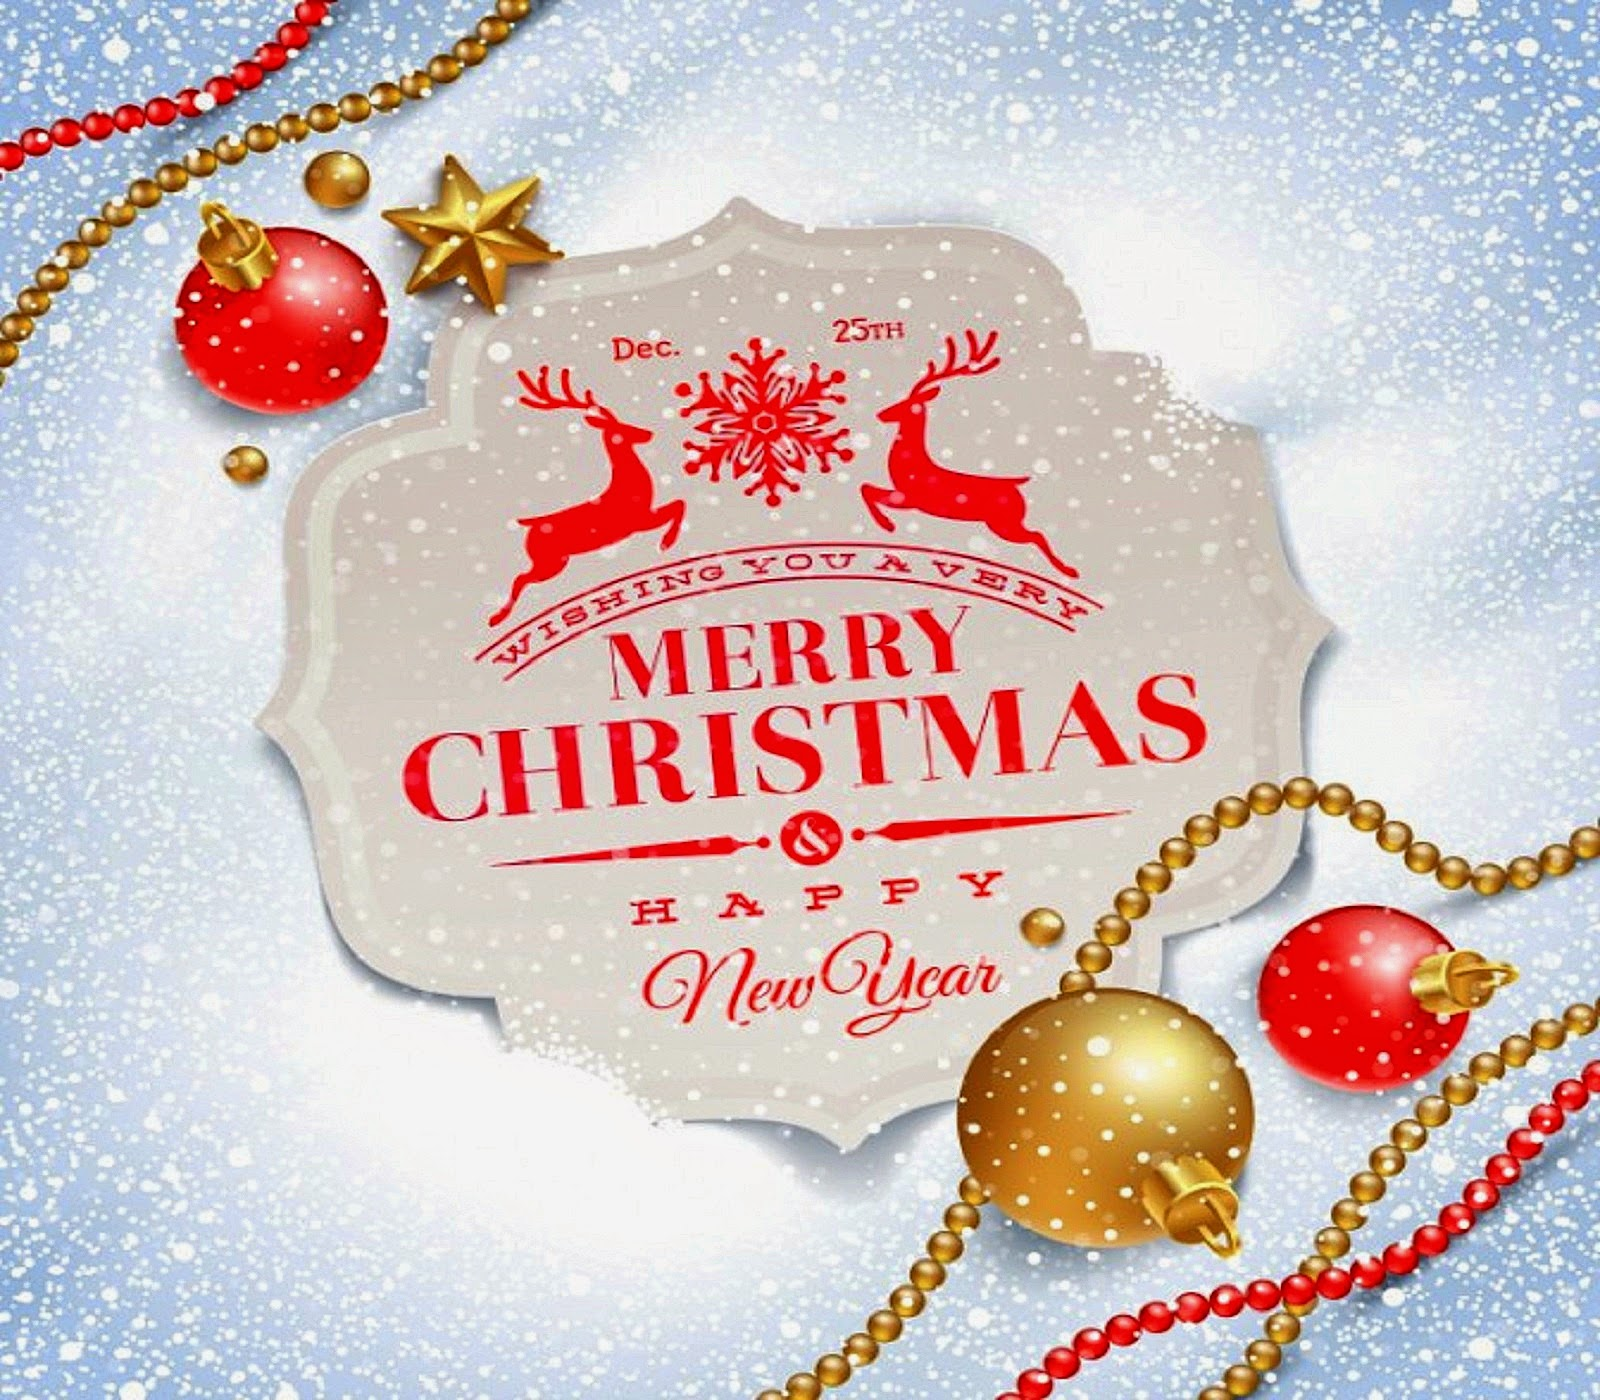 merry_christmas_new-year-red-text-white-background-with-reindeer-design-snow-fall.jpg